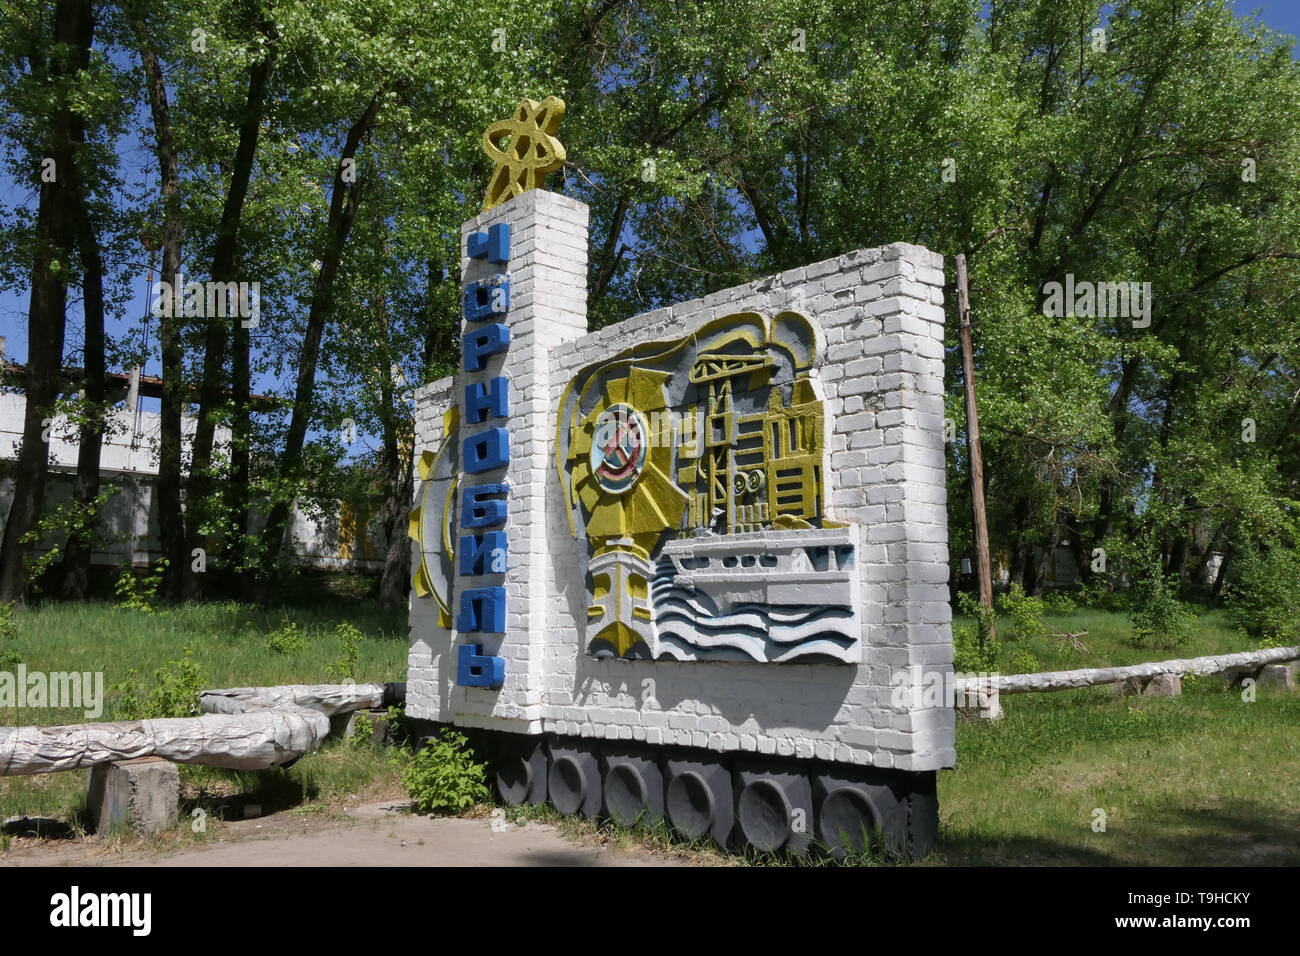 Entrance sign to Chernobyl exclusion zone, Ukraine - Stock Image